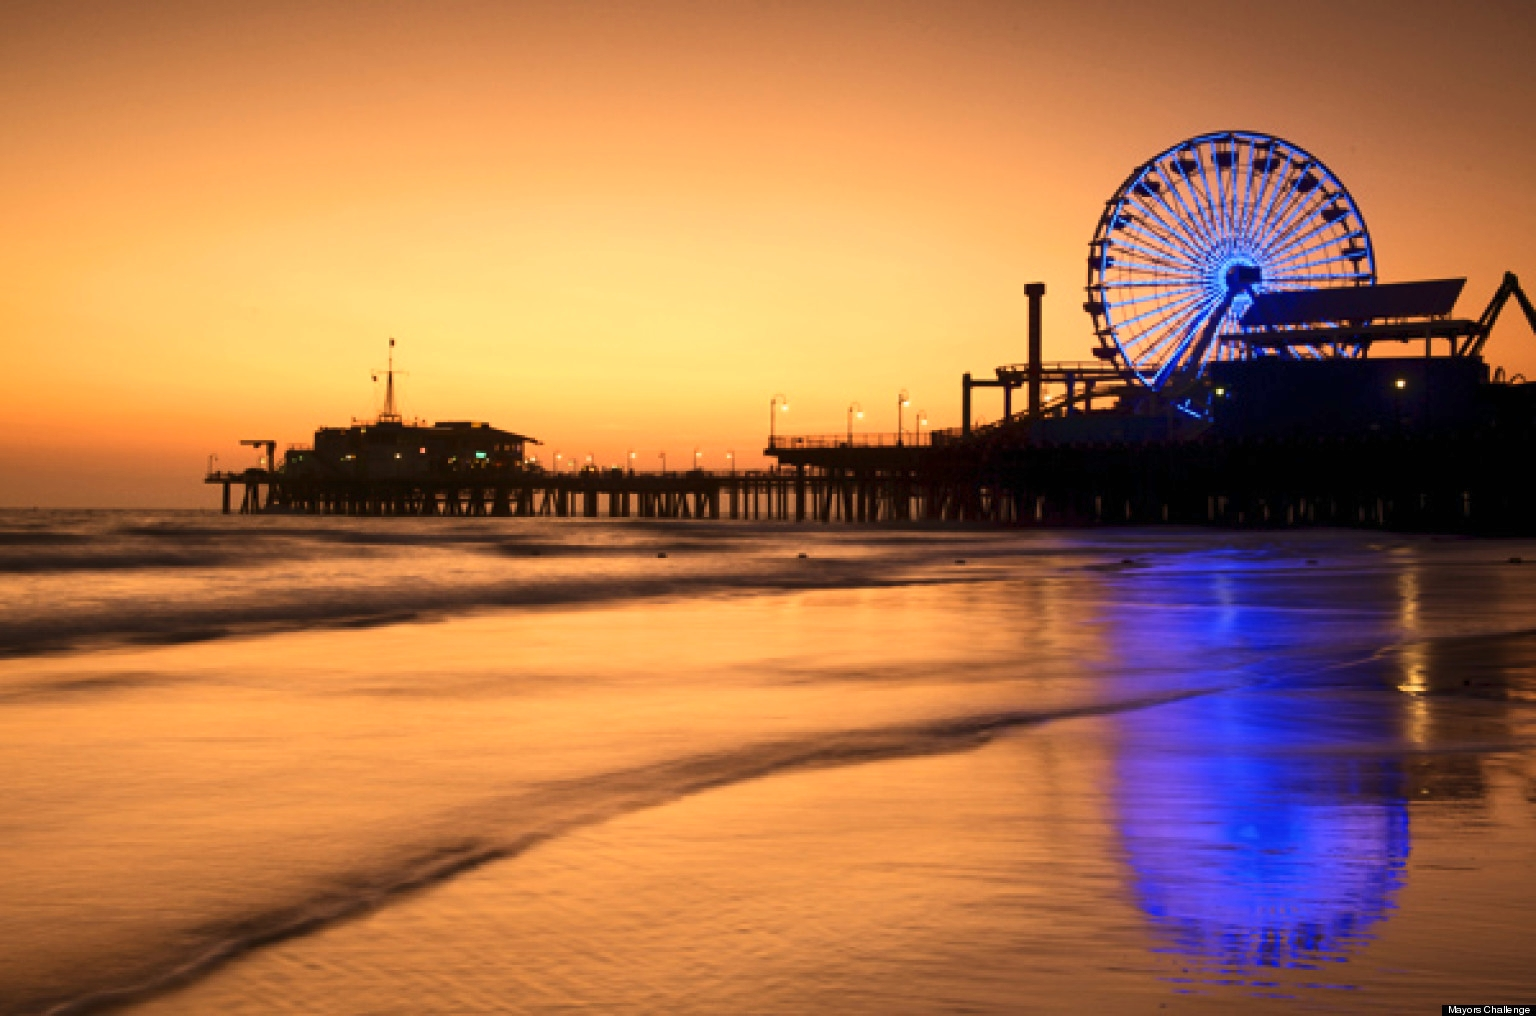 Santa Monica Beach    Santa Monica is a city west of downtown Los Angeles. Santa Monica Beach is fringed by Palisades Park, with views over the Pacific Ocean. The storied Santa Monica Pier is home to the Pacific Park amusement park, historic Looff Hippodrome Carousel and Santa Monica Pier Aquarium. Next to the pier is Muscle Beach, an outdoor gym established in the 1930s. In the city center, Bergamot Station houses several art galleries.